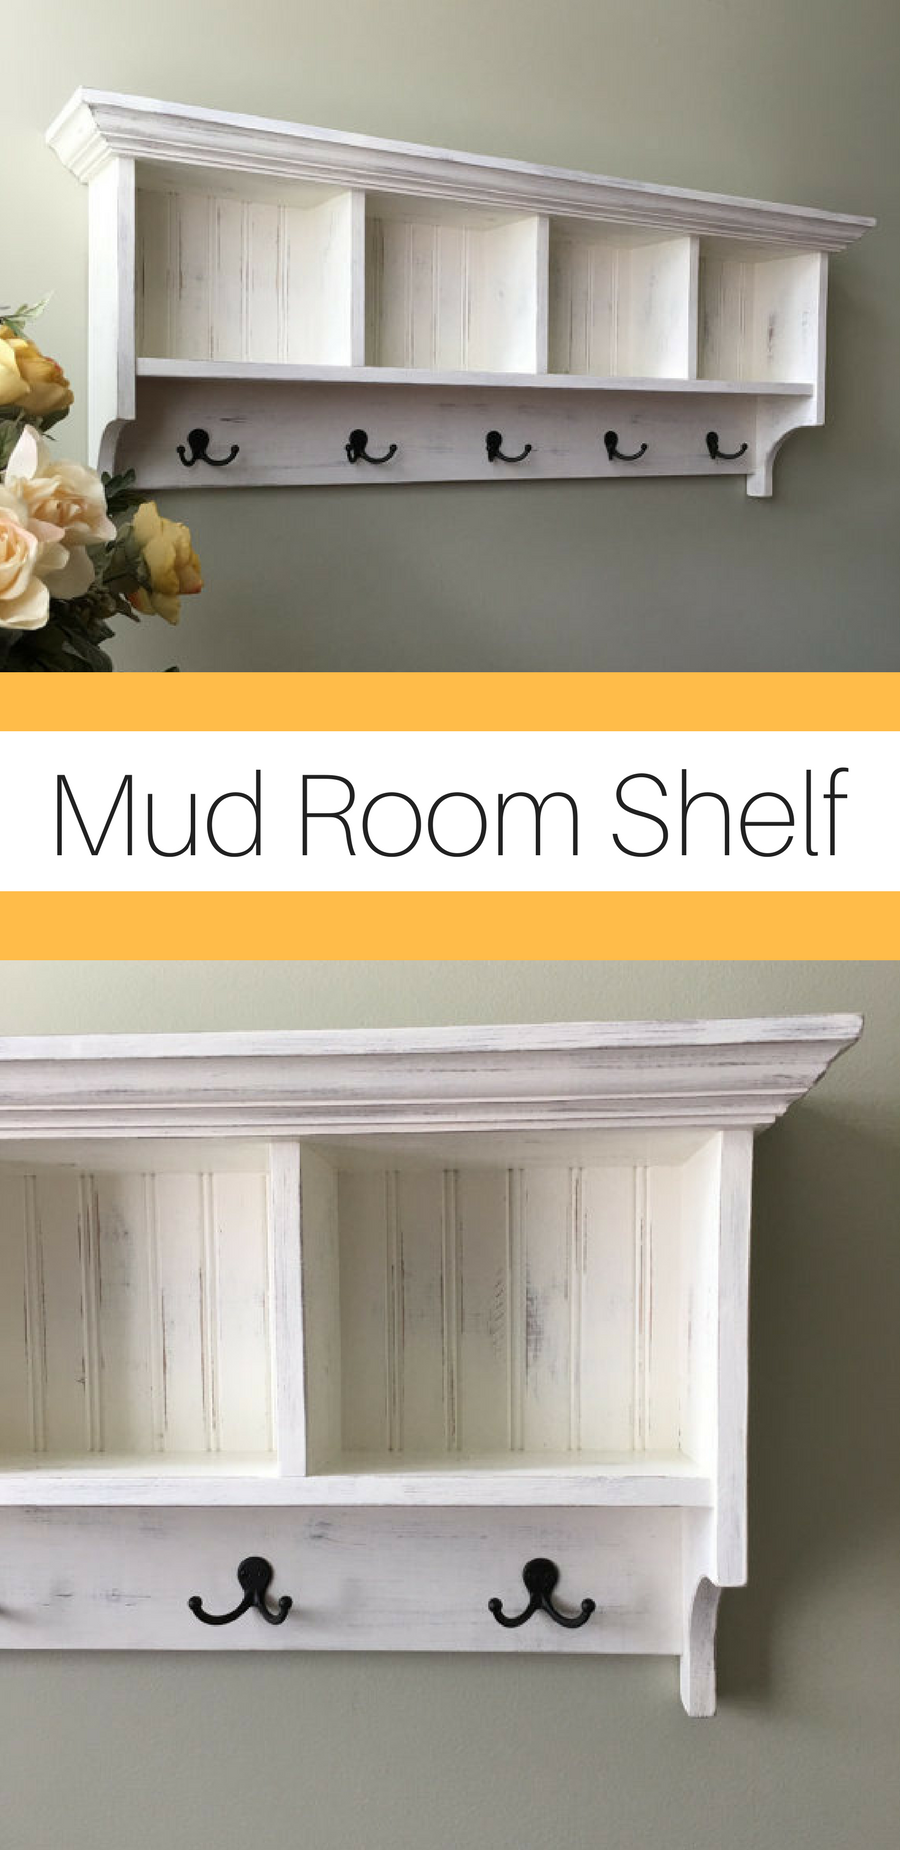 This Wall Shelf Is A Great Organizer For The Mudroom Family Room Or Kids Room Use The Cubbies For Gloves Keys Hats Books To Shelves Wall Shelves Mudroom